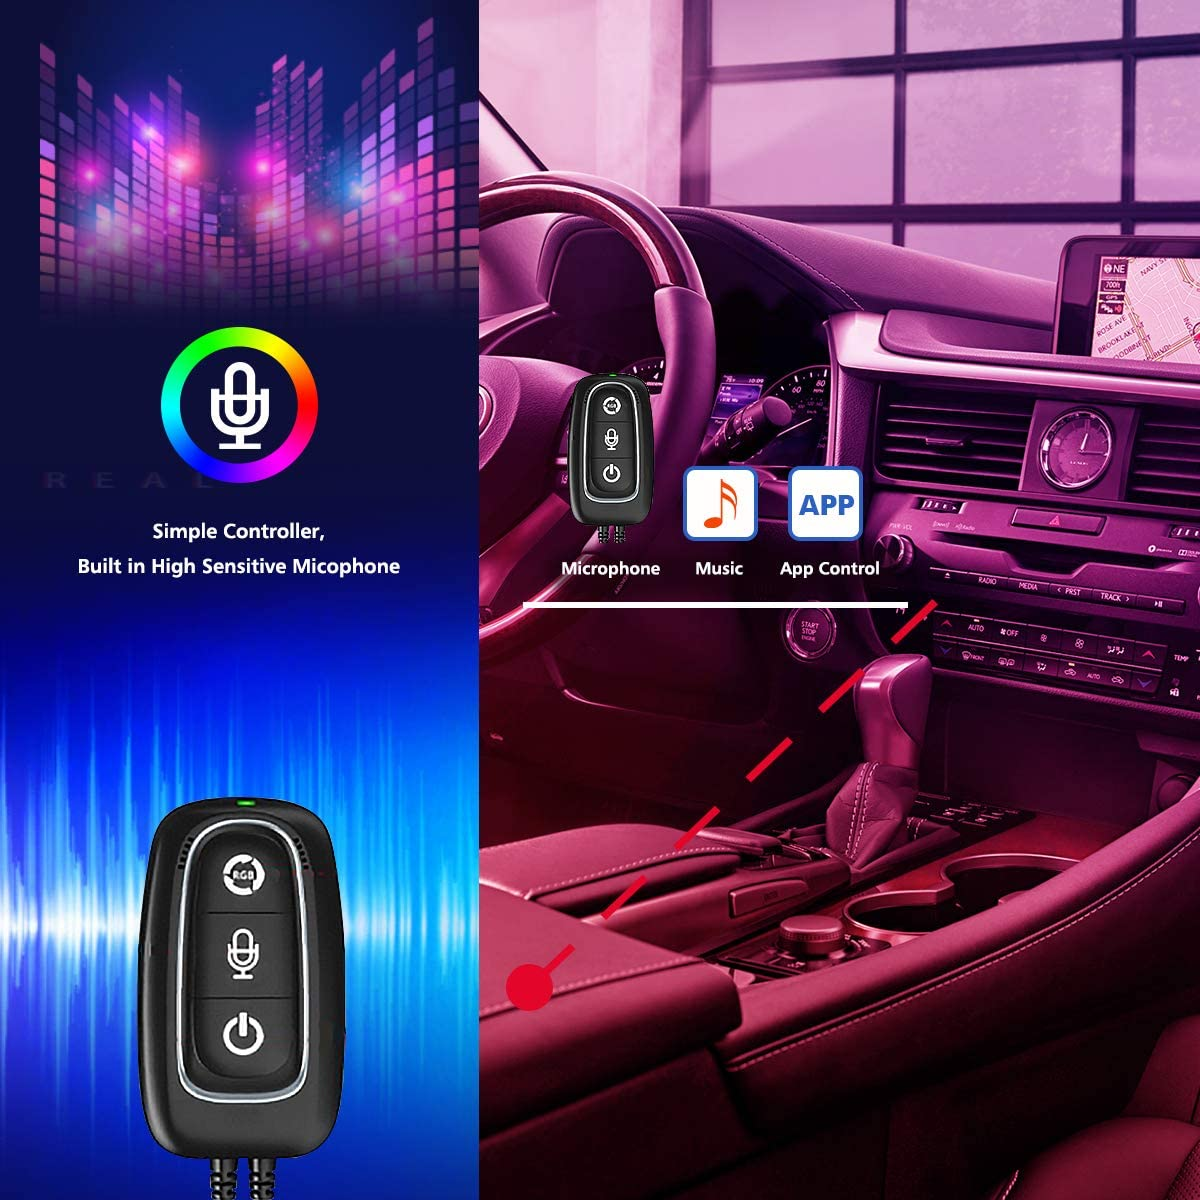 Interior Car Lights,LED Strip Lights for Cars Upgrade Two-Line Design Waterproof APP Controller Lighting Kits with Wireless Remote Control /& Music Sensor DC 12V